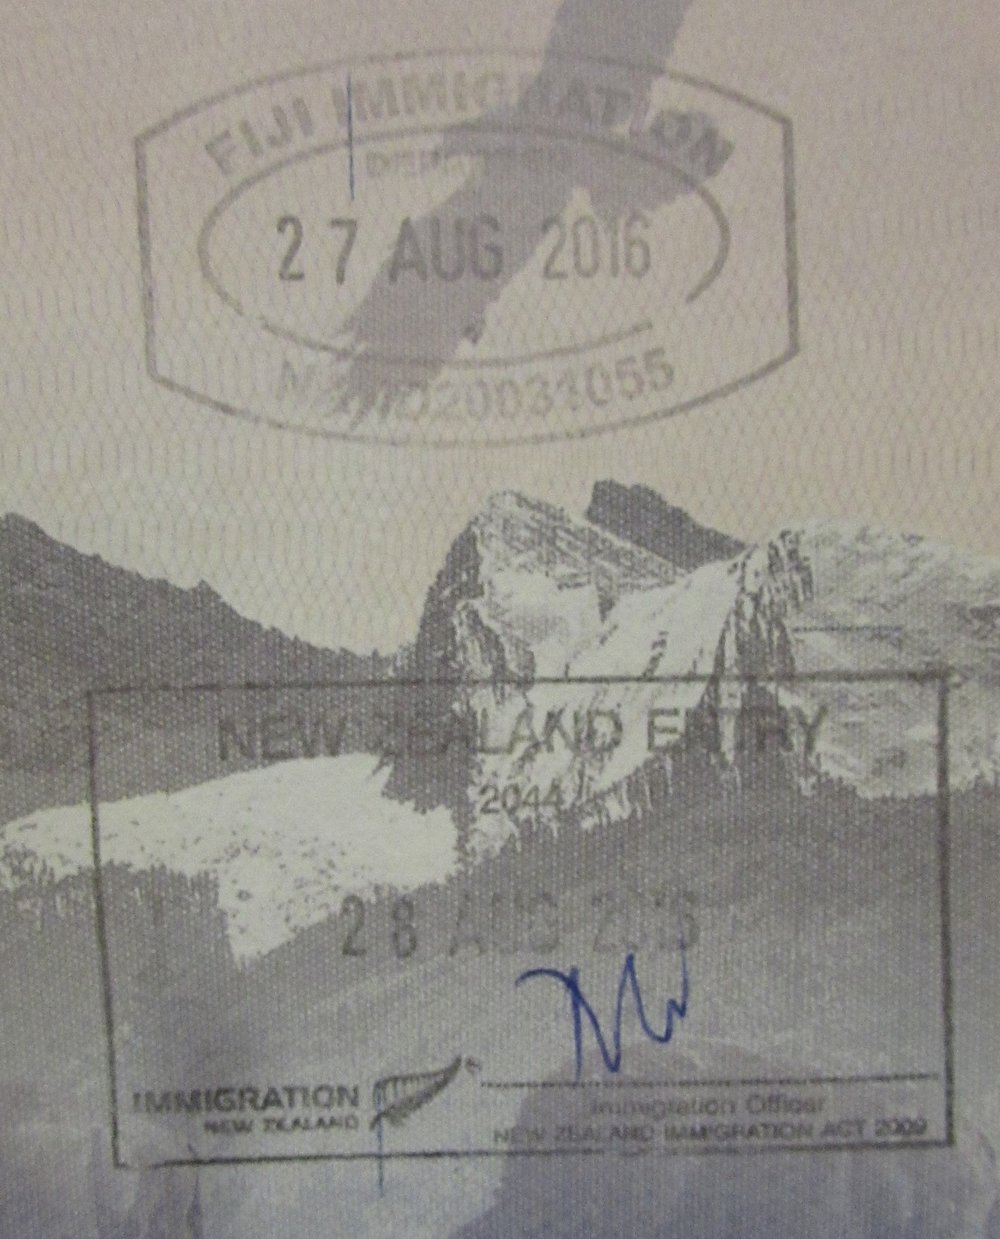 My passport stamps leaving Fiji and entering New Zealand